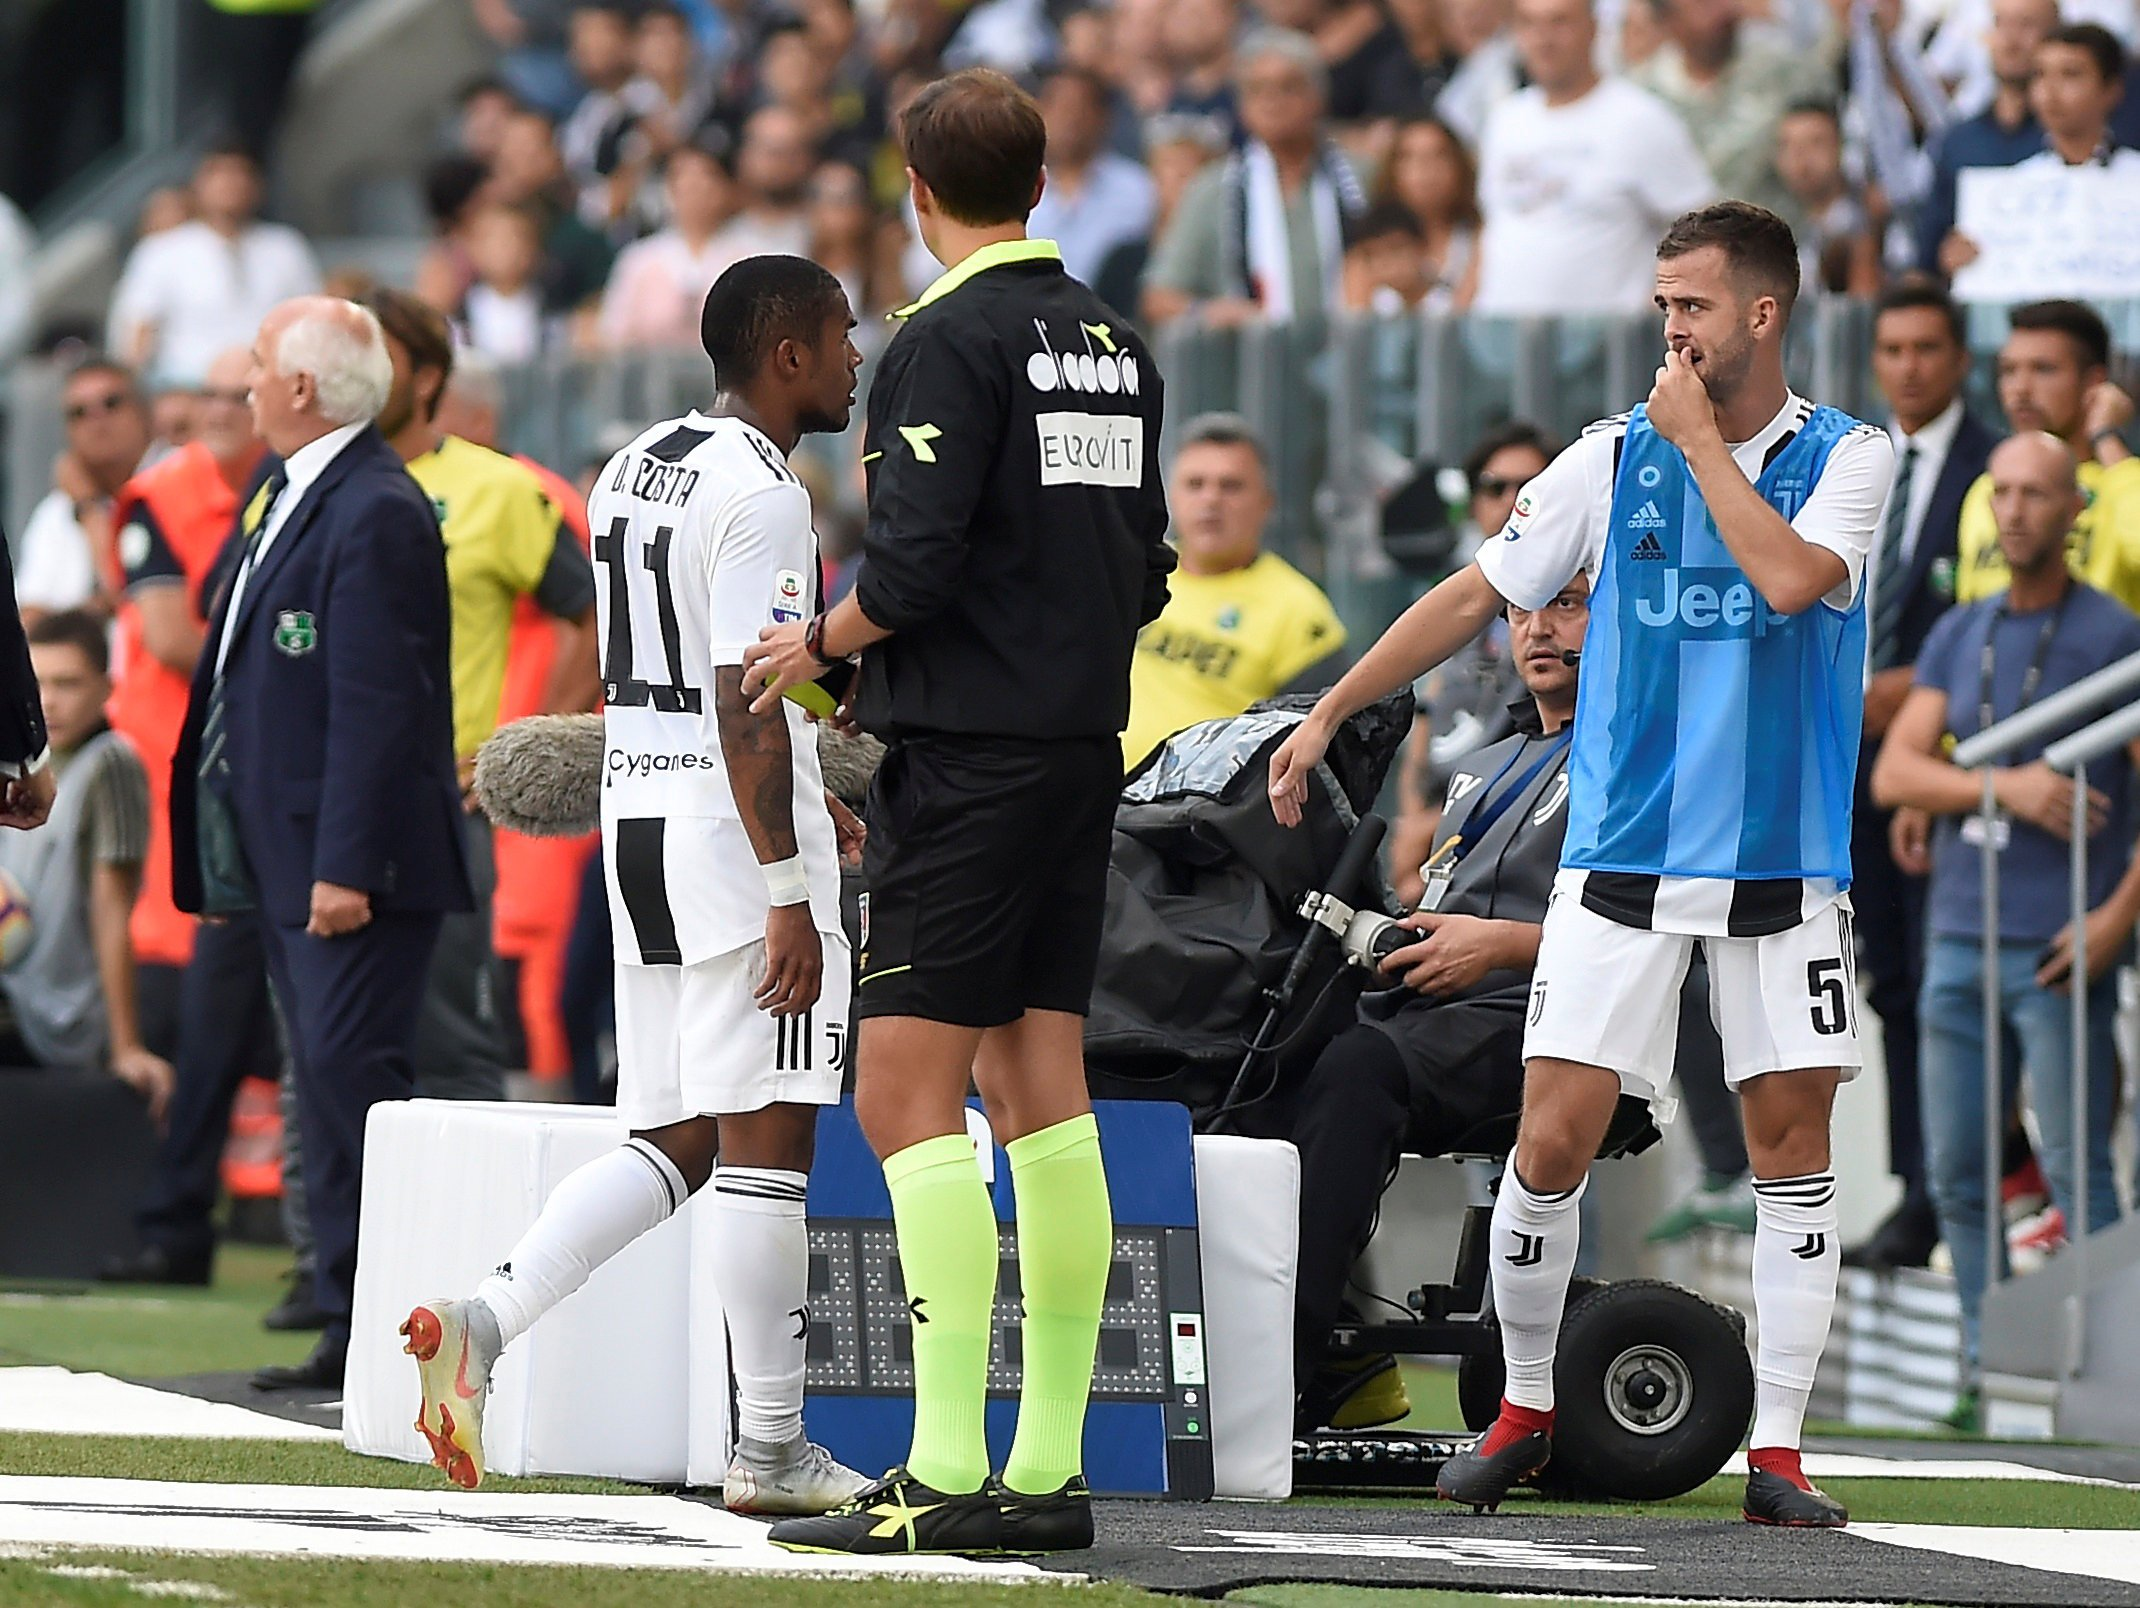 Soccer Football - Serie A - Juventus v U.S Sassuolo - Allianz Stadium, Turin, Italy - September 16, 2018 Juventus' Douglas Costa leaves the pitch after being shown a red card by referee Daniele Chiffi REUTERS/Massimo Pinca